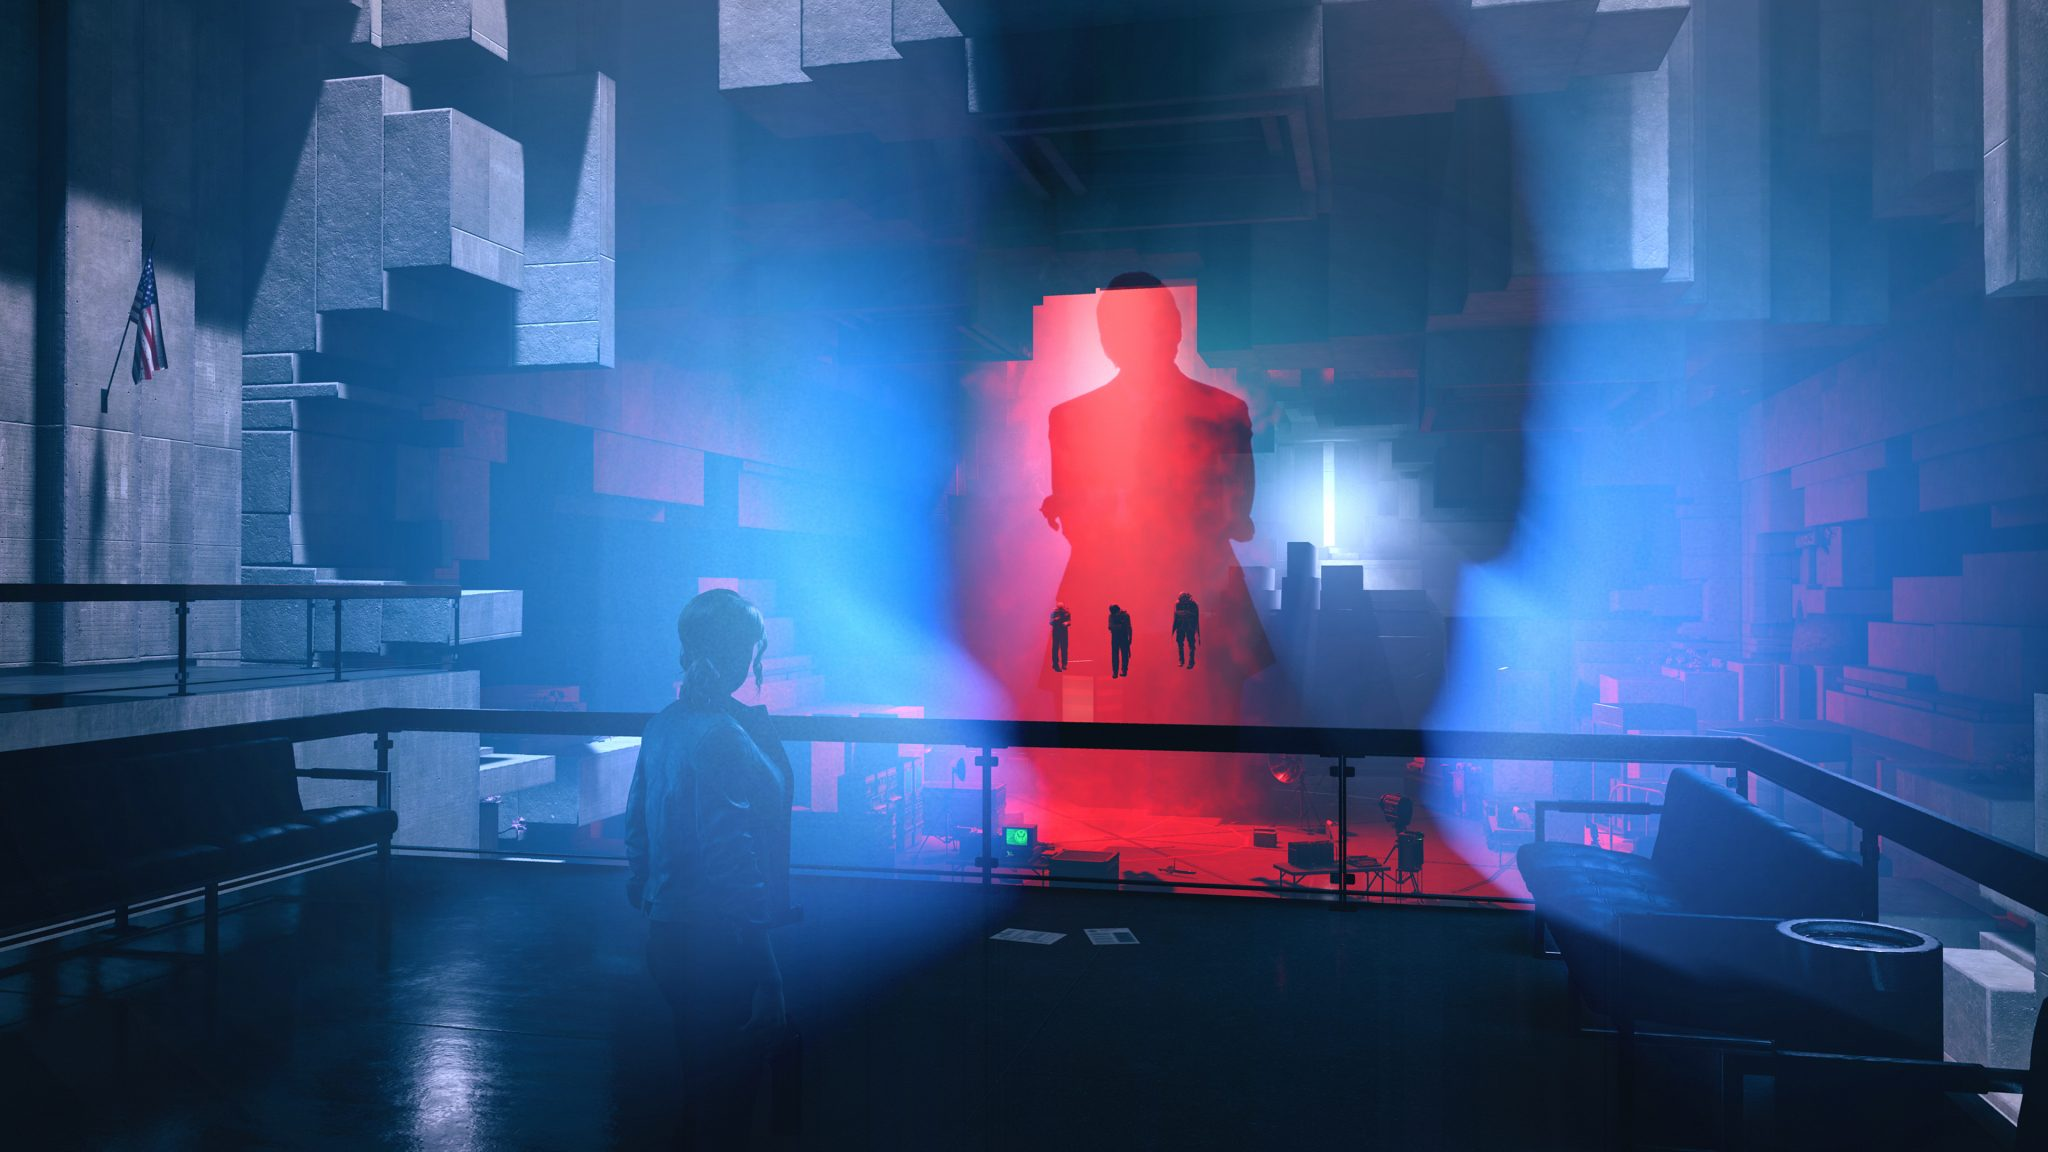 A scene with a humanoid presence